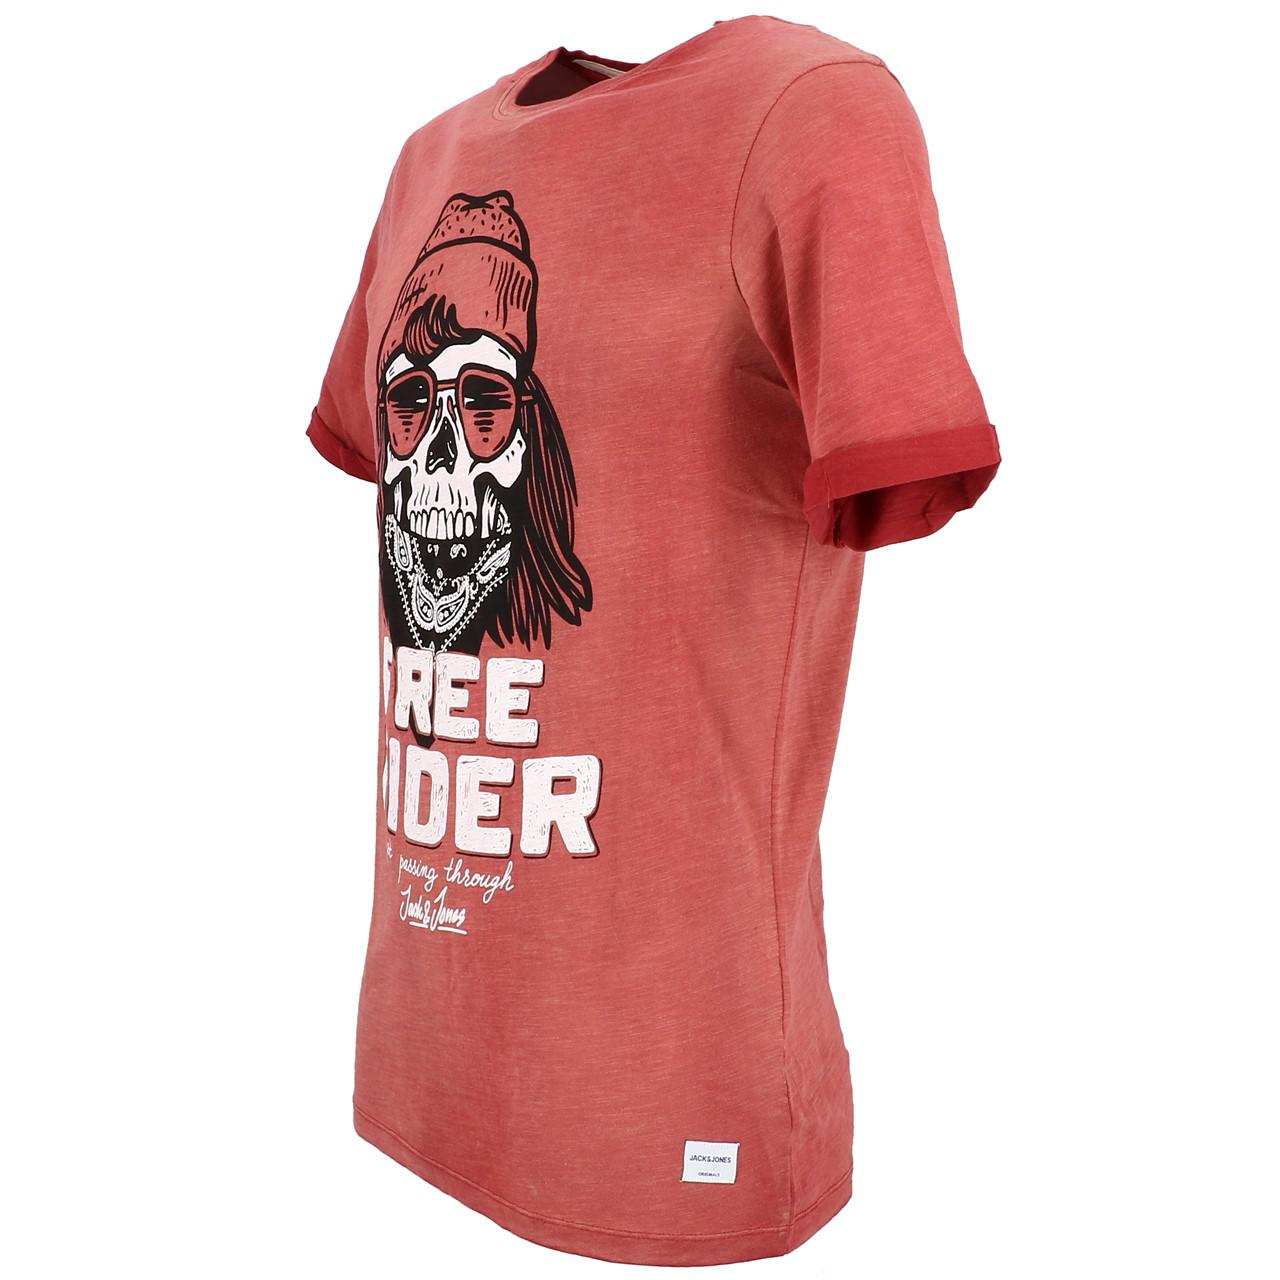 Short-Sleeve-T-Shirt-Jack-and-Jones-Craps-Brick-Red-Mc-Tee-Red-28384-Does-Not thumbnail 4